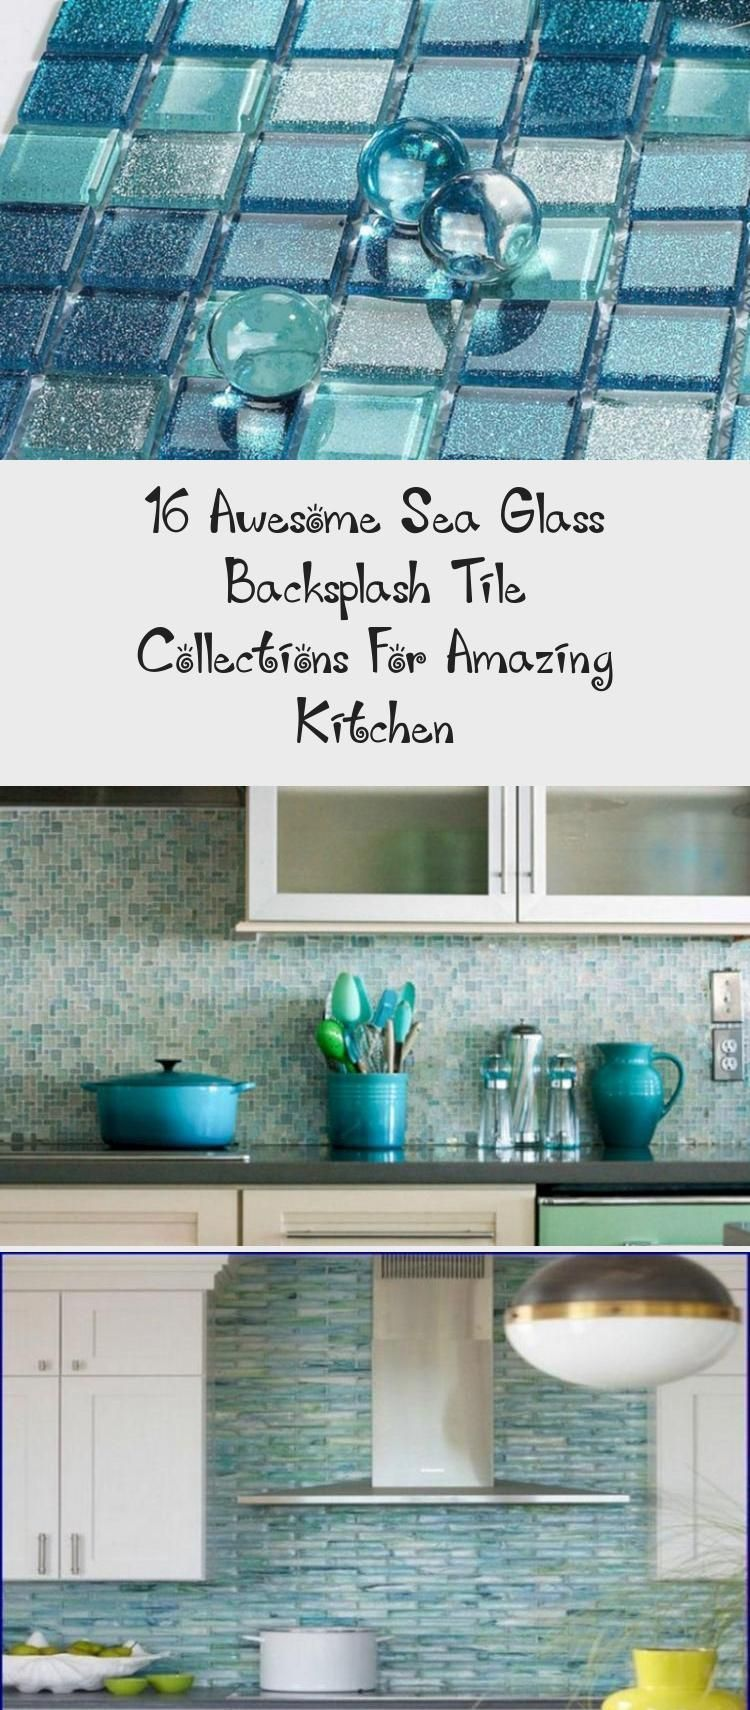 16 Awesome Sea Glass Backsplash Tile Collections For Amazing Kitchen - Decorations  16 Awesome Sea Glass Backsplash Tile Collections For Amazing Kitchen #kitchens #kitchendecor #kitch #Amazing #Awesome #Backsplash #Collections #Decorations #GLASS #Kitchen #Sea #tile